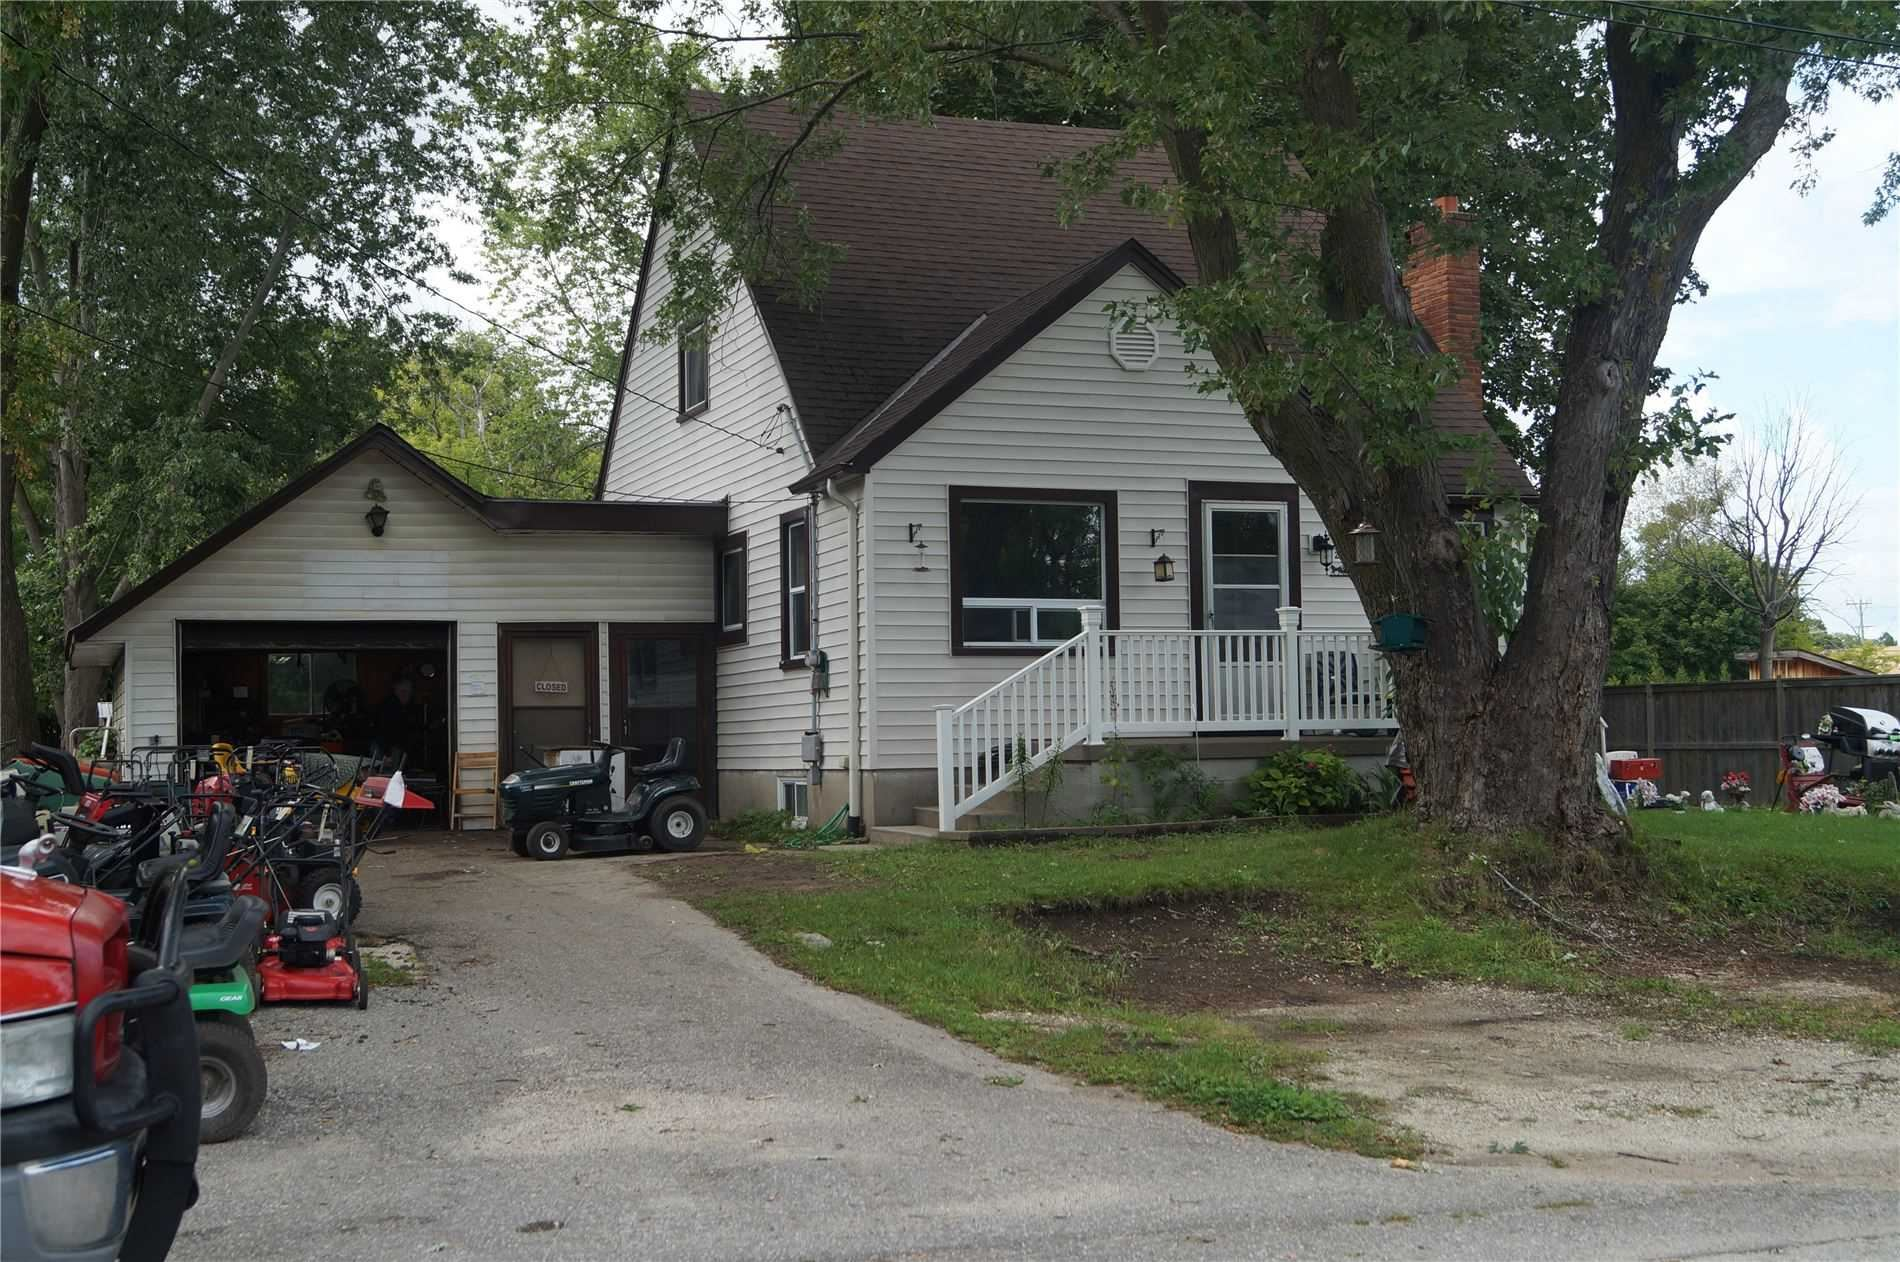 205 Phillips St, Clearview, ON L0M 1S0 - MLS#: S5374672